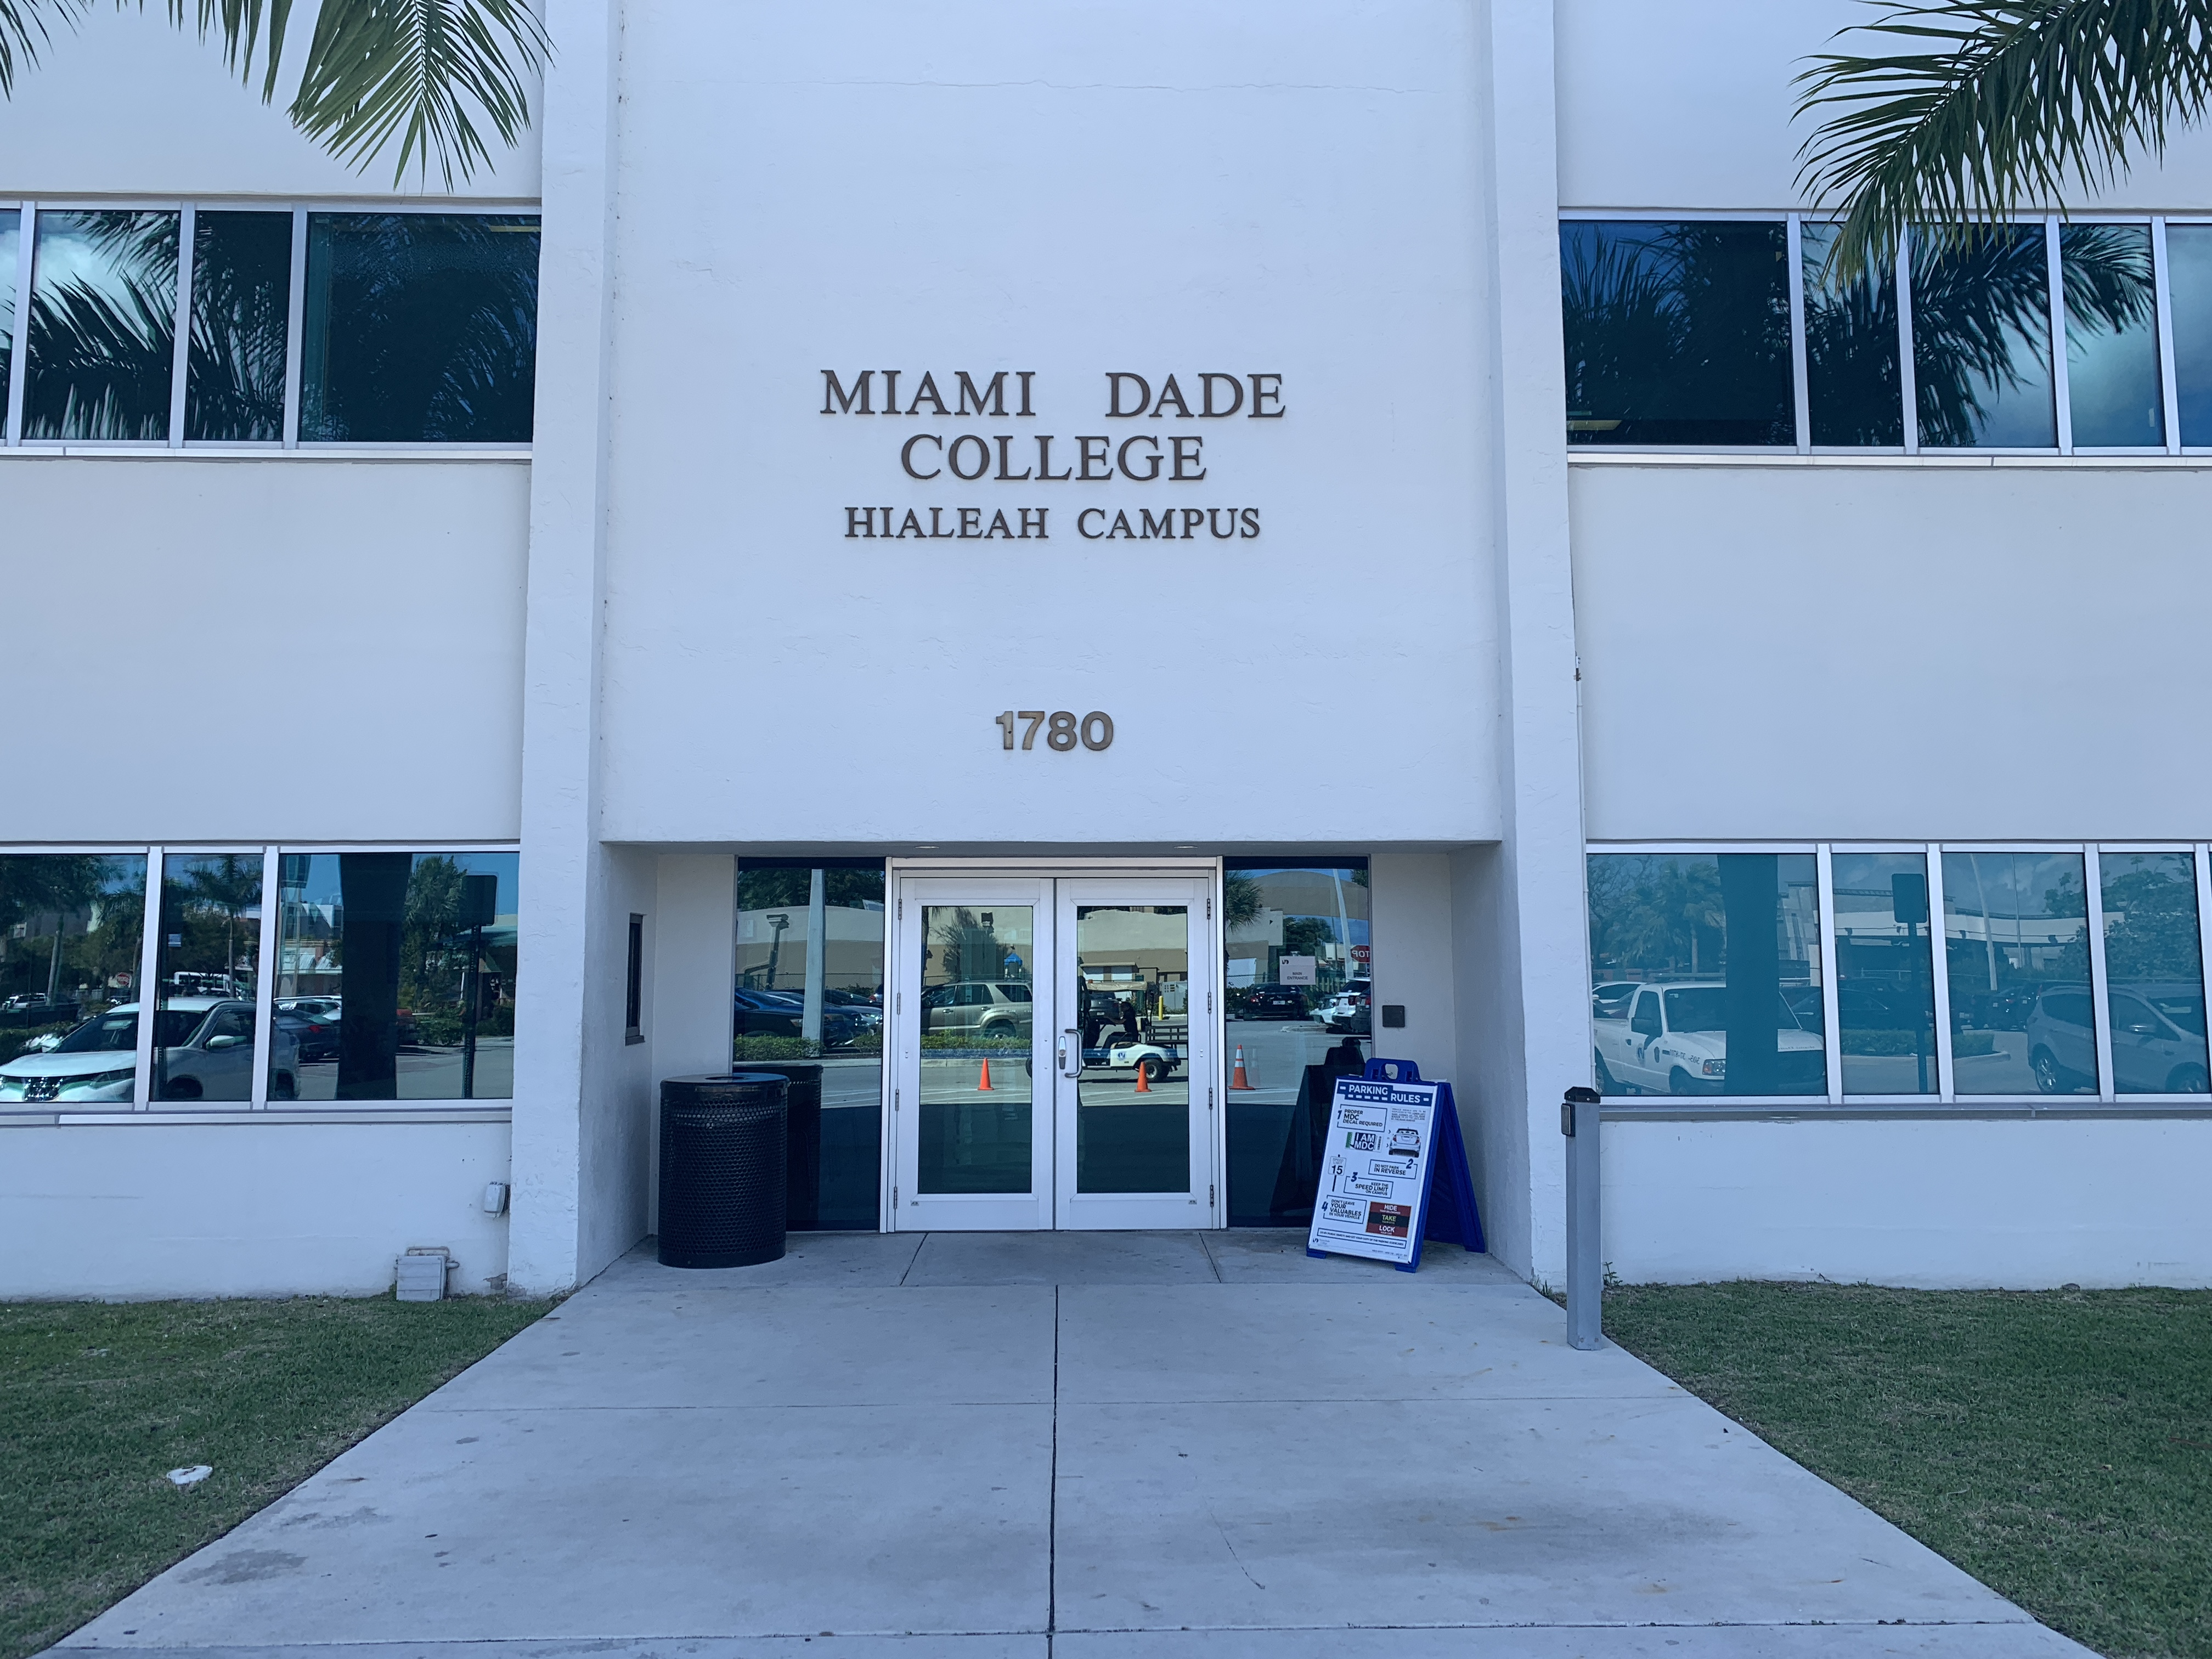 File:Miami Dade College Campus entrance .jpg - Wikimedia Commons